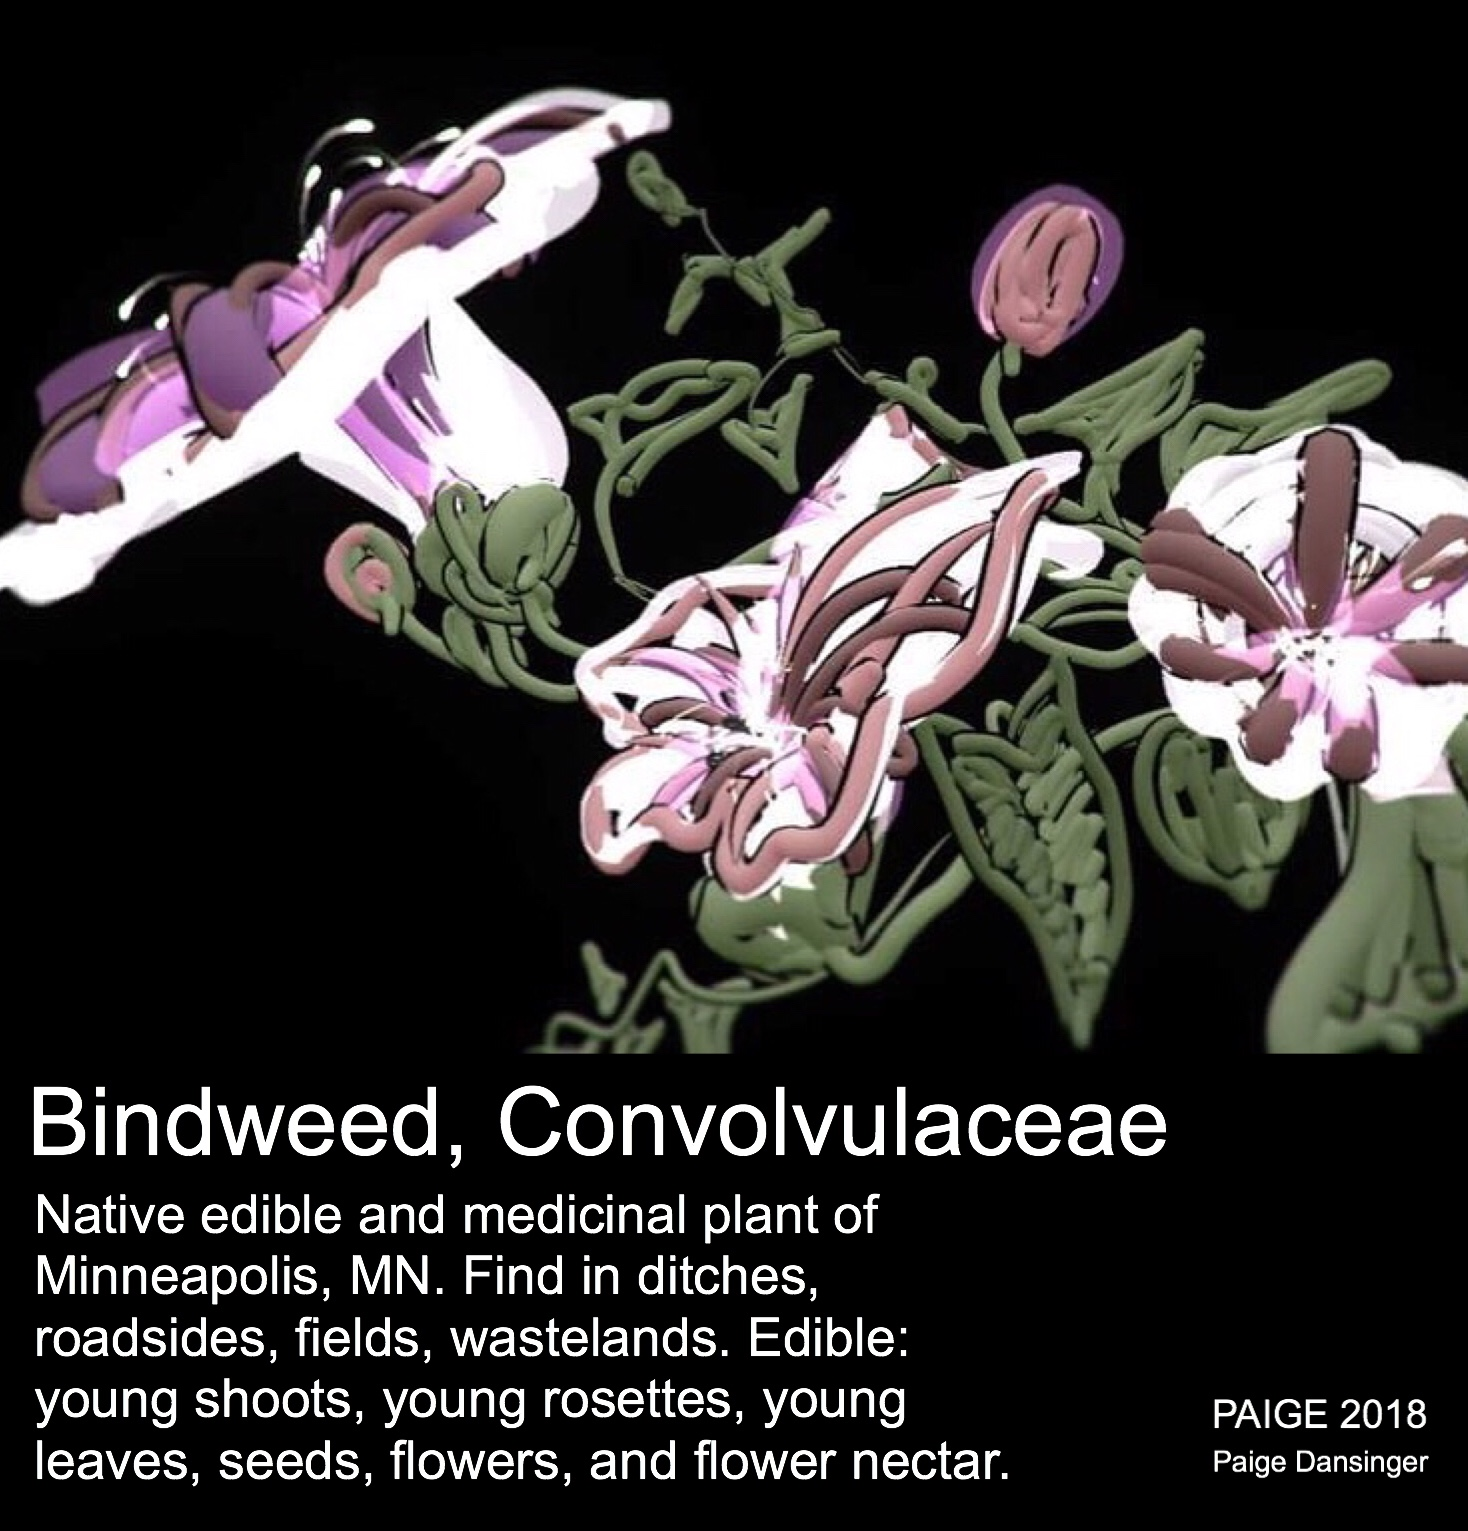 Bindweed, Convolvulva. After Lady Wilkinson's Weeds & Wildflowers, 1885.